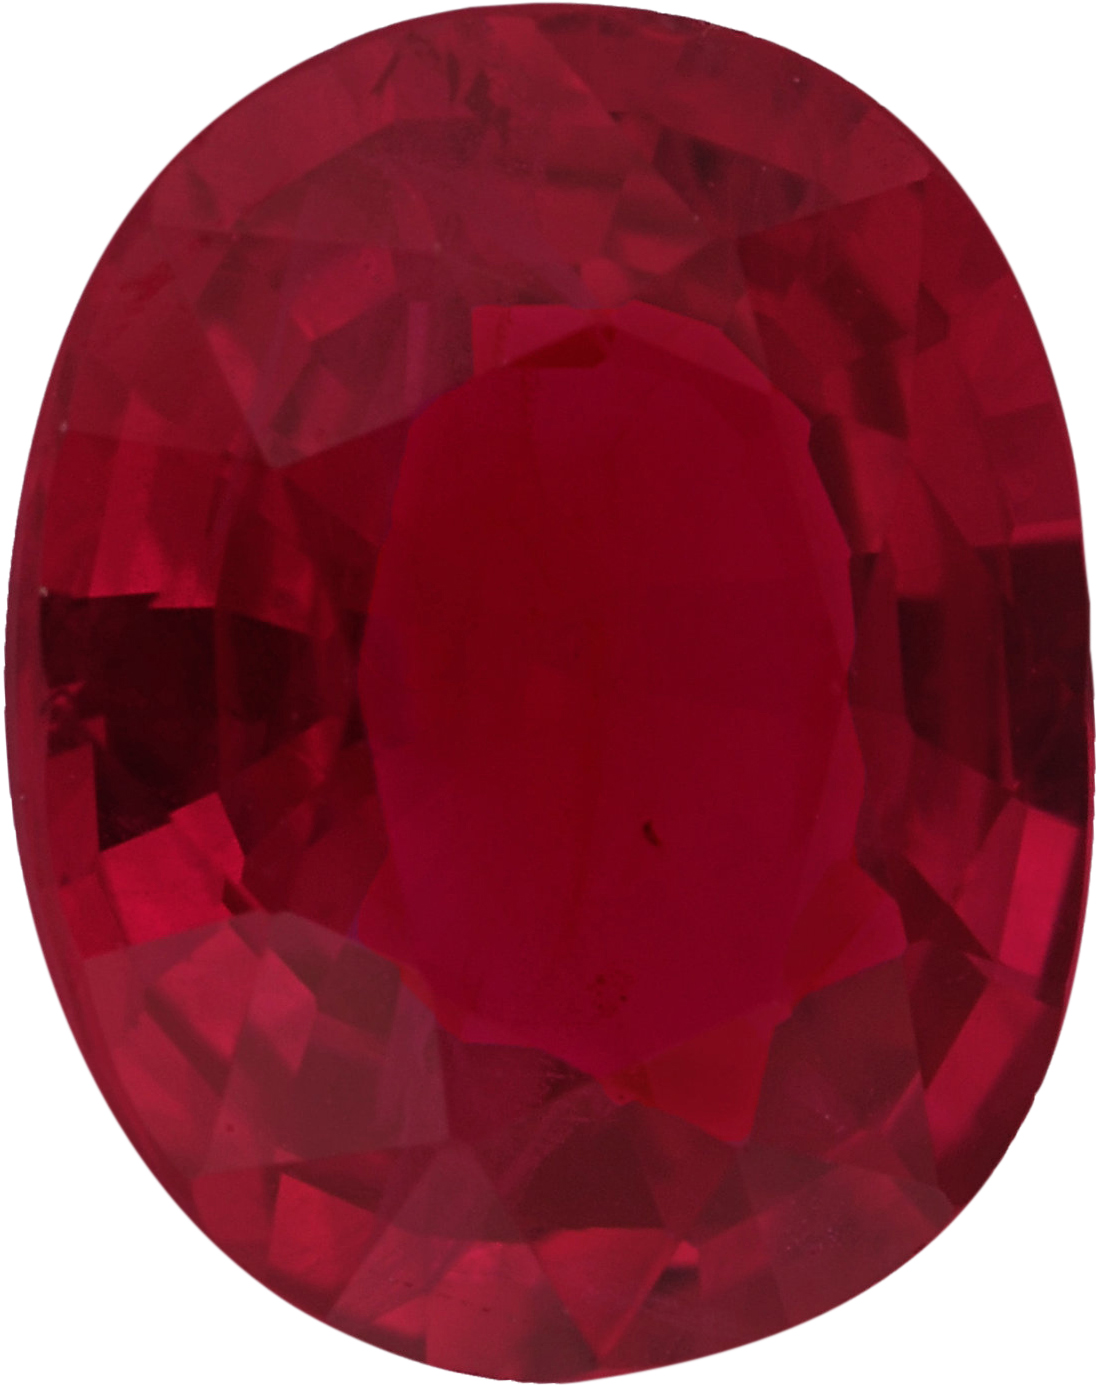 Good Looking Loose Ruby Gem in Oval Cut, Vivid  Red Color, 7.12 x 5.74 mm, 1.14 carats